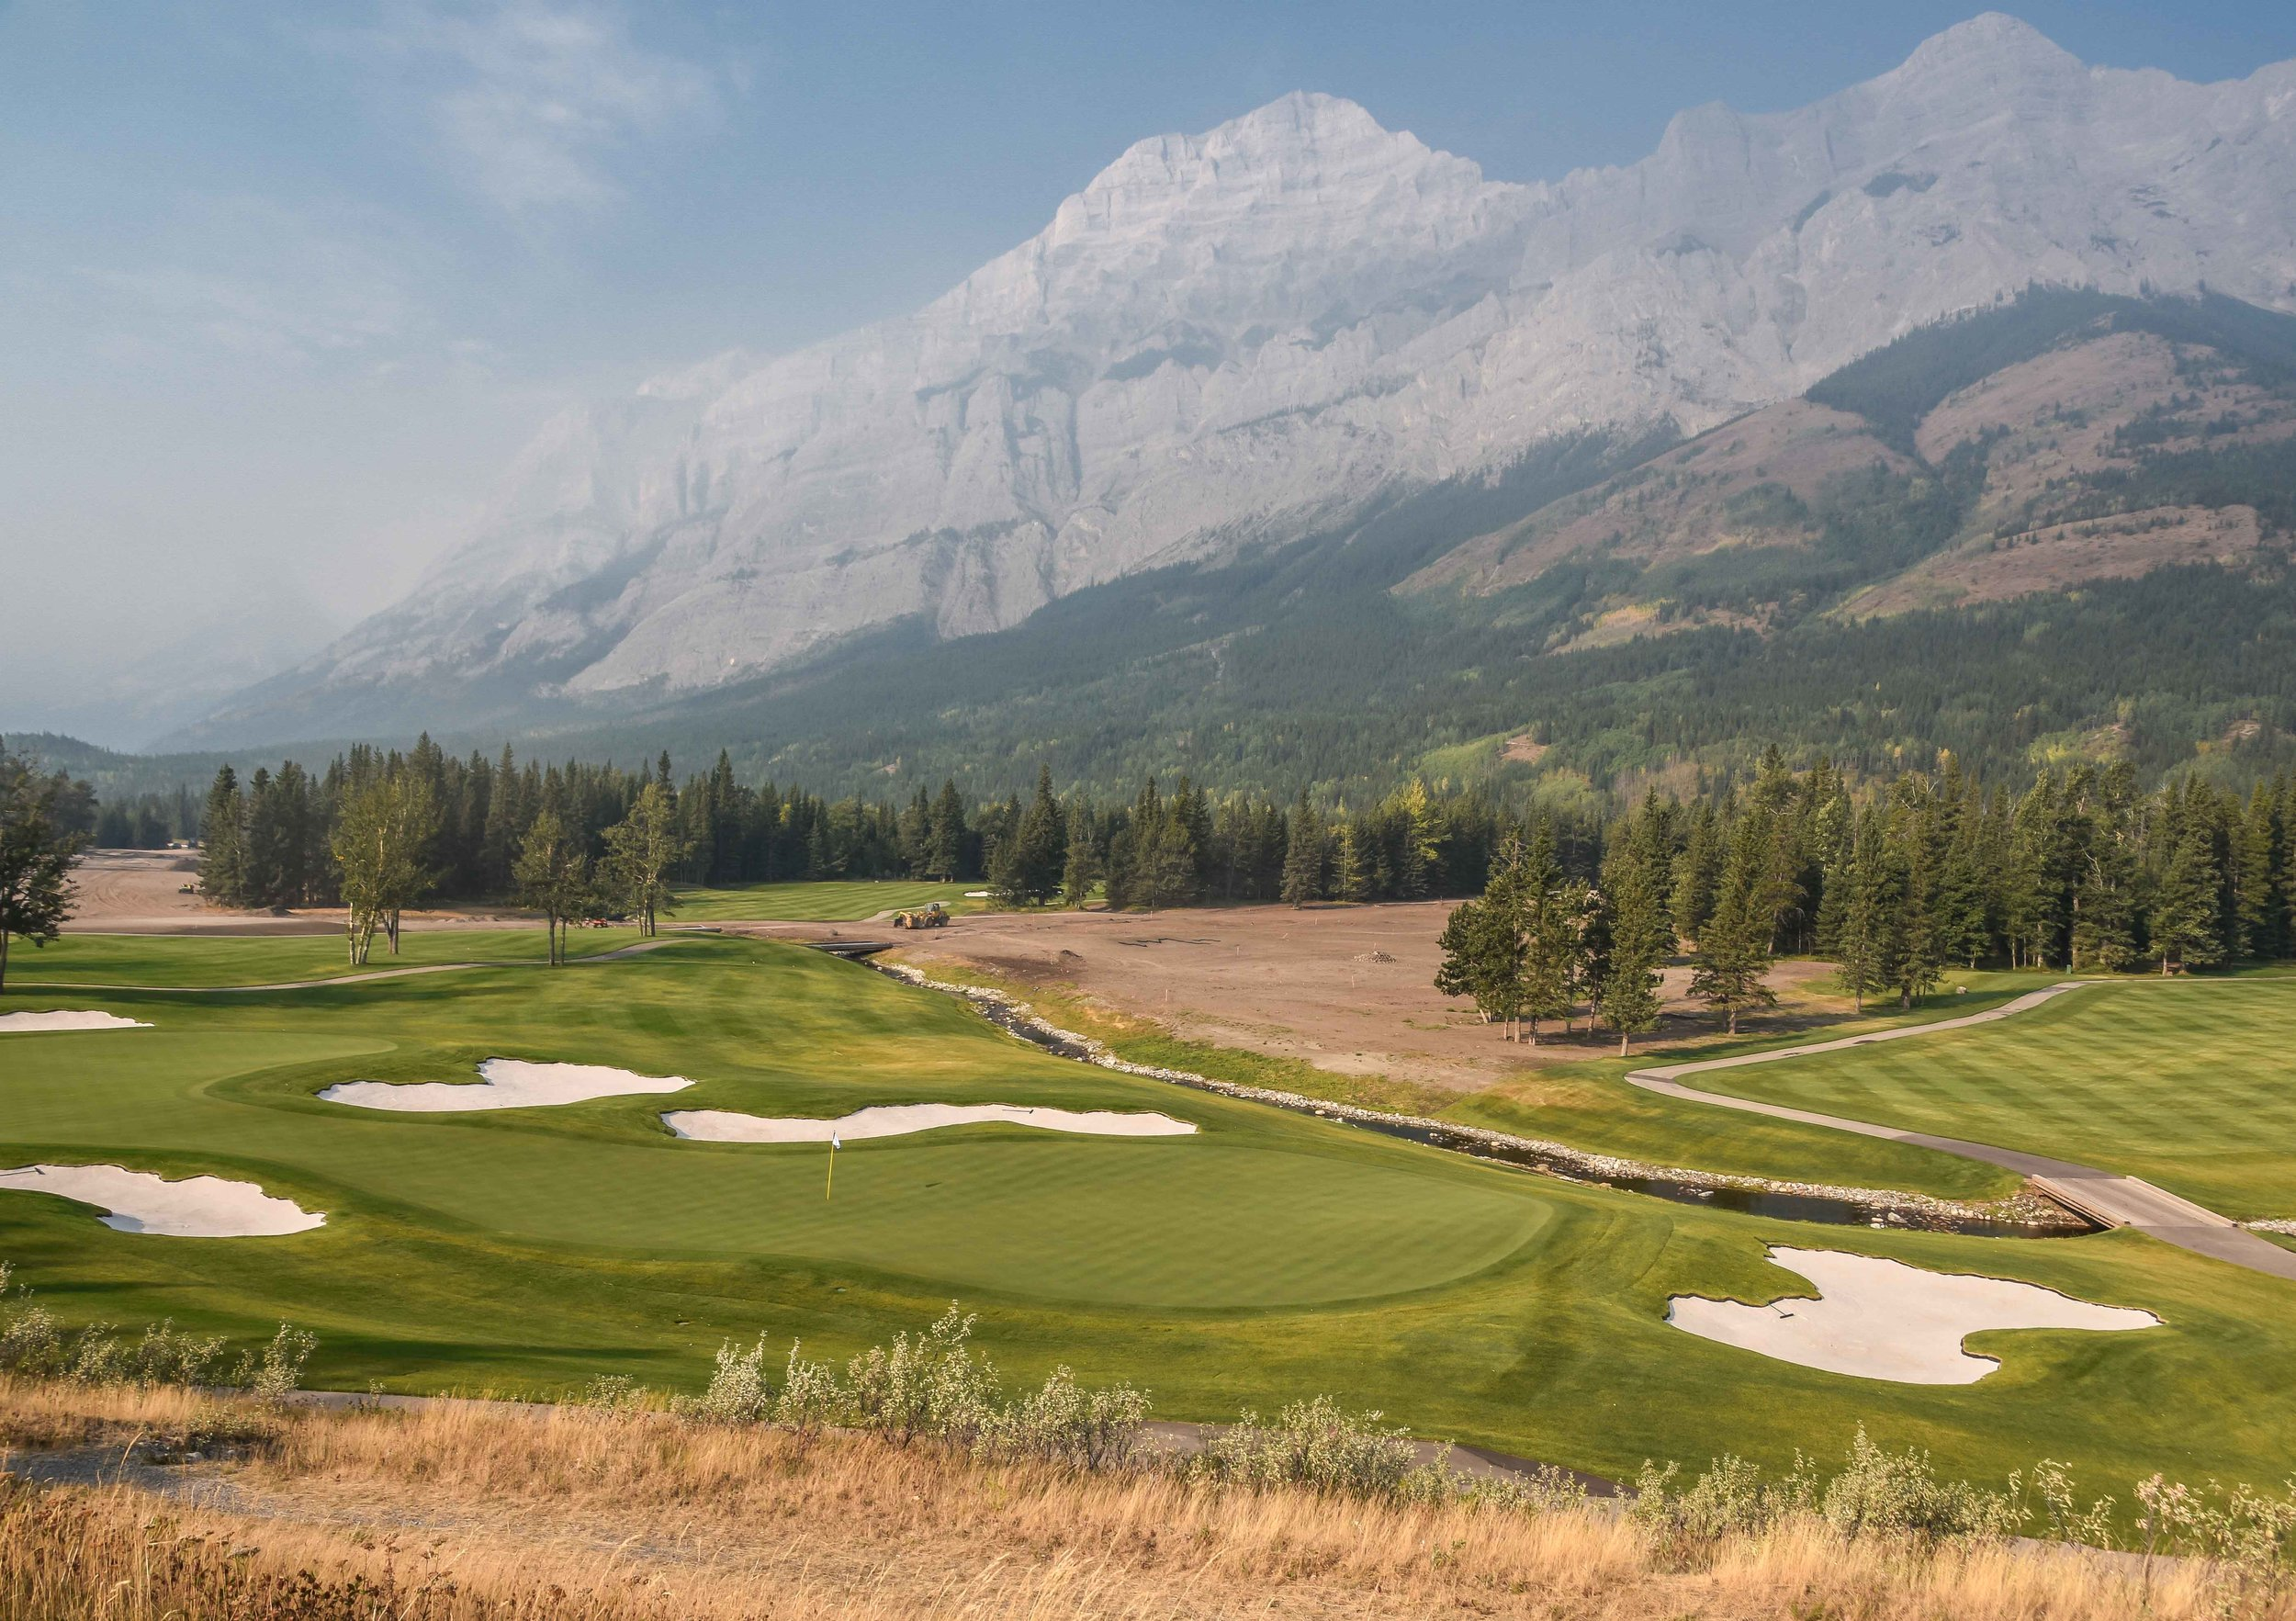 The dual green on the Mt Lorette 18.  You can see the 9th hole on the Mt Kidd 18 still under construction below the mountains.